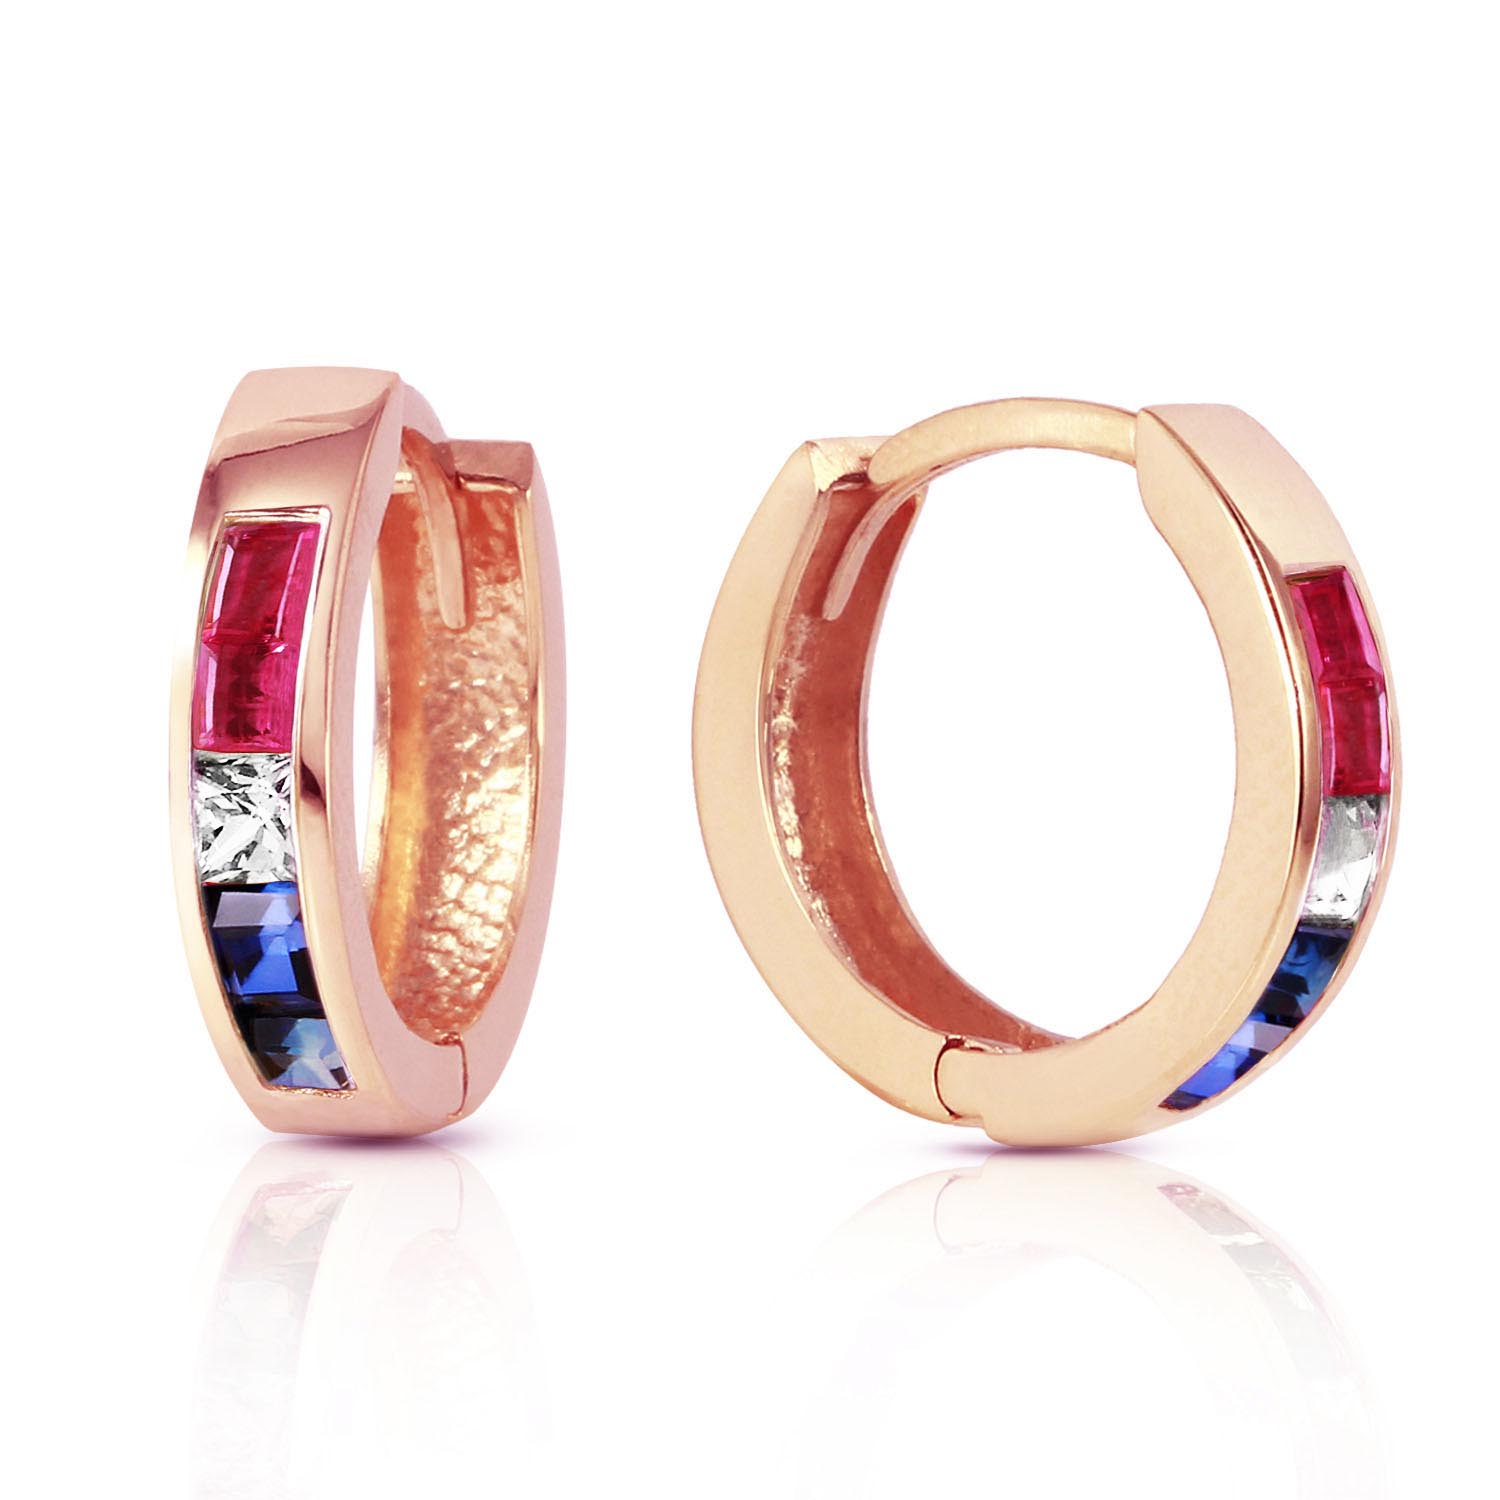 Gemstone Huggie Earrings 1.28ctw in 9ct Rose Gold